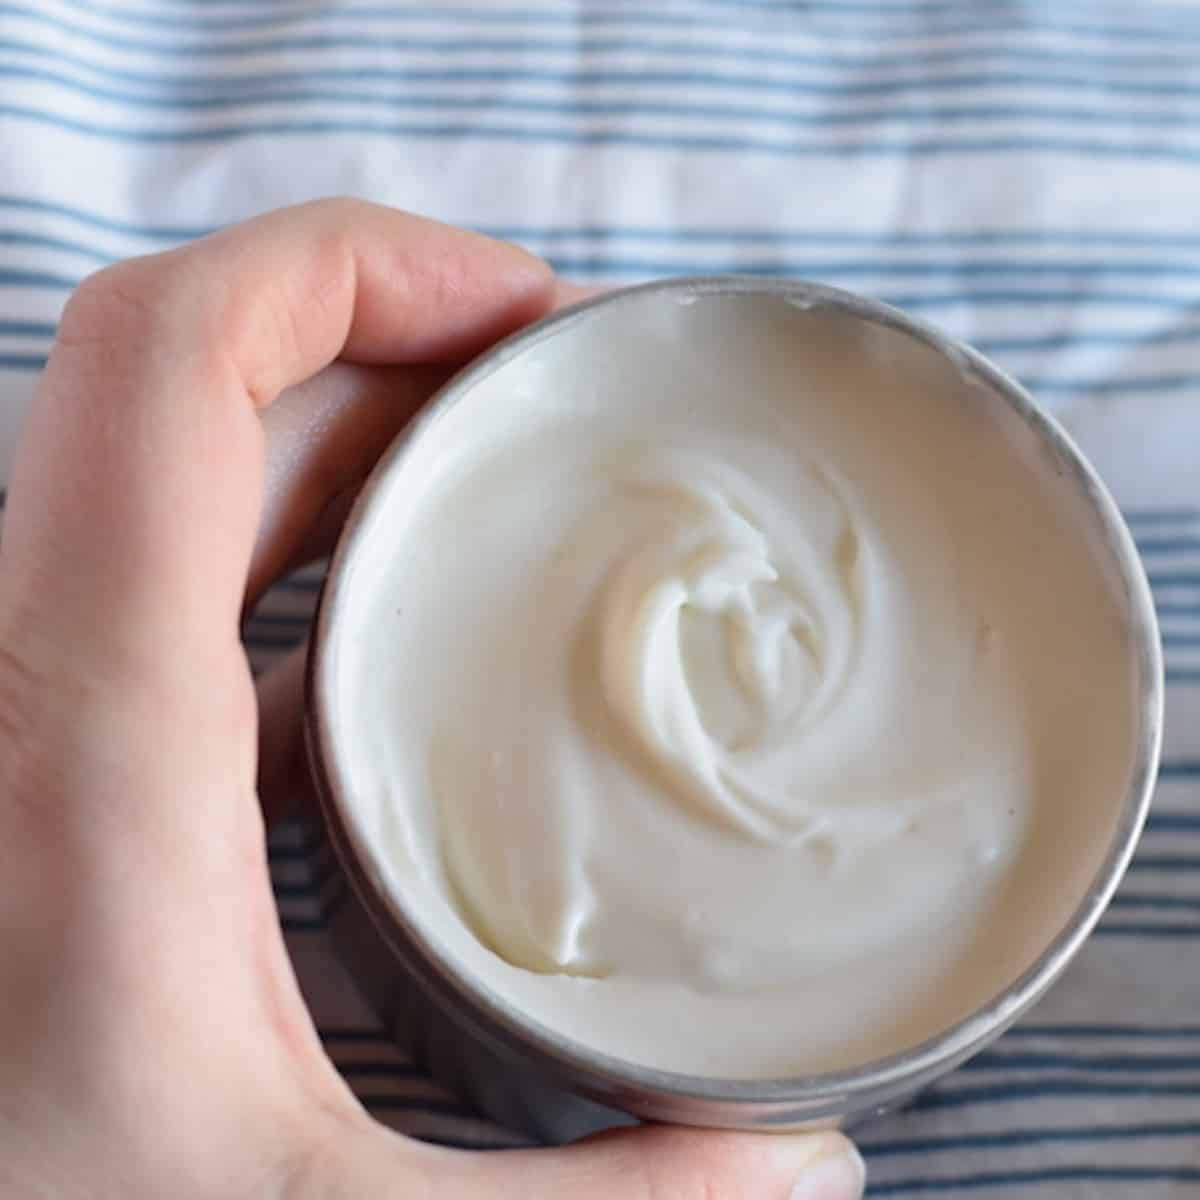 homemade body butter in a metal tin